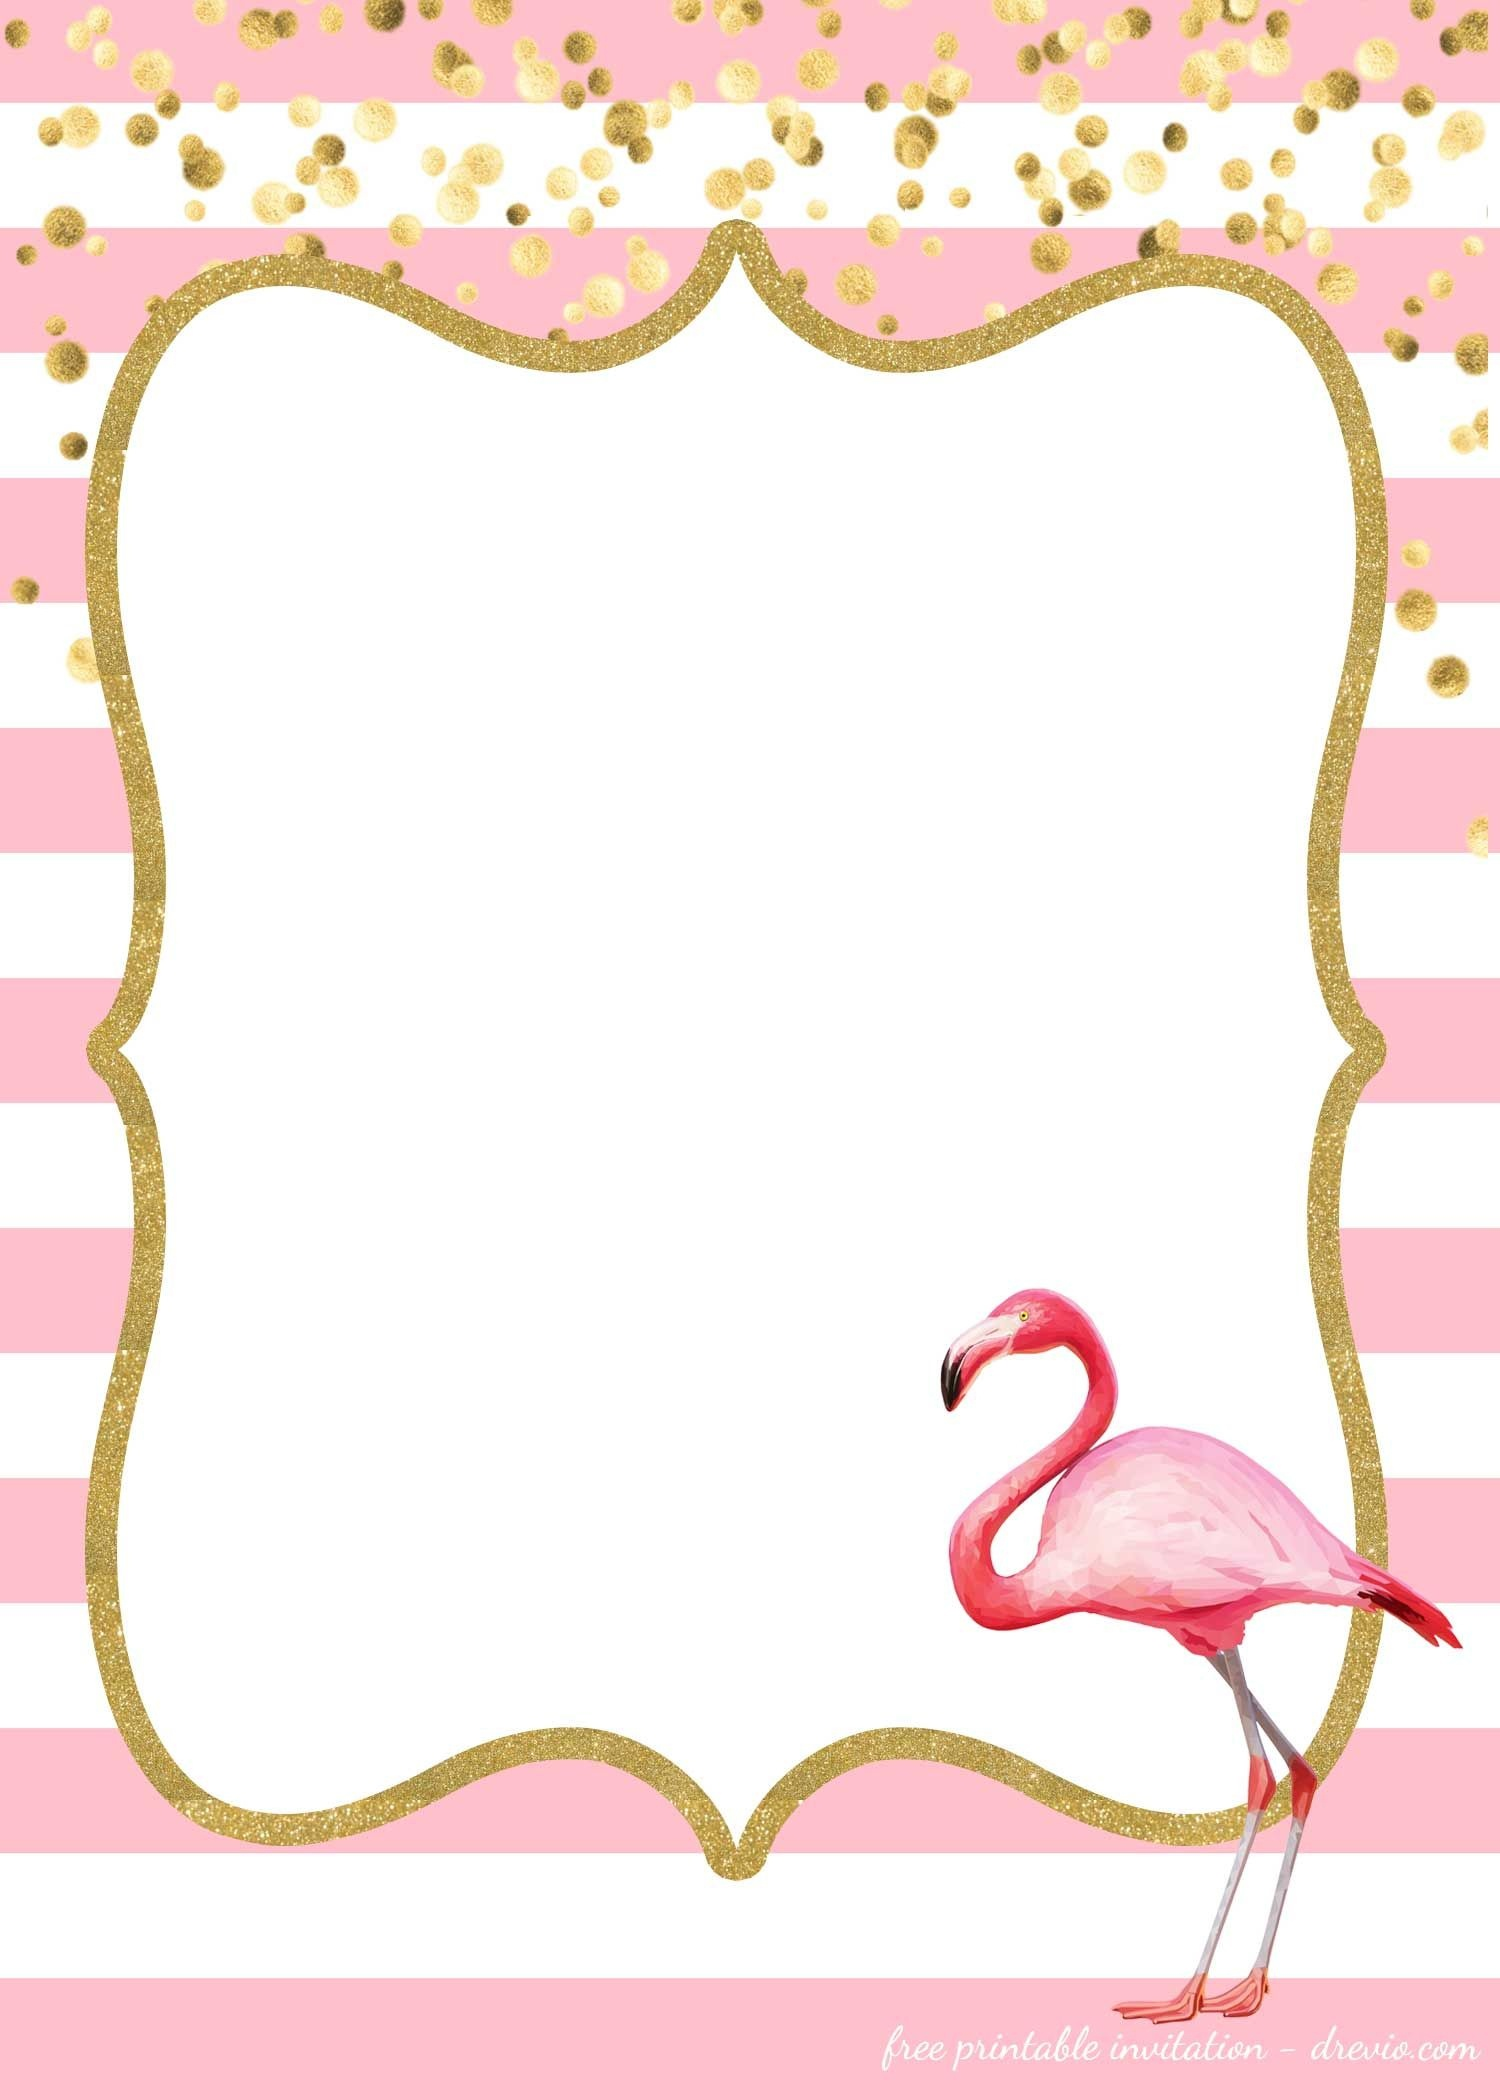 Free Flamingo Invitations Templates - Downloadable | Birthday - Free Printable Pineapple Invitations